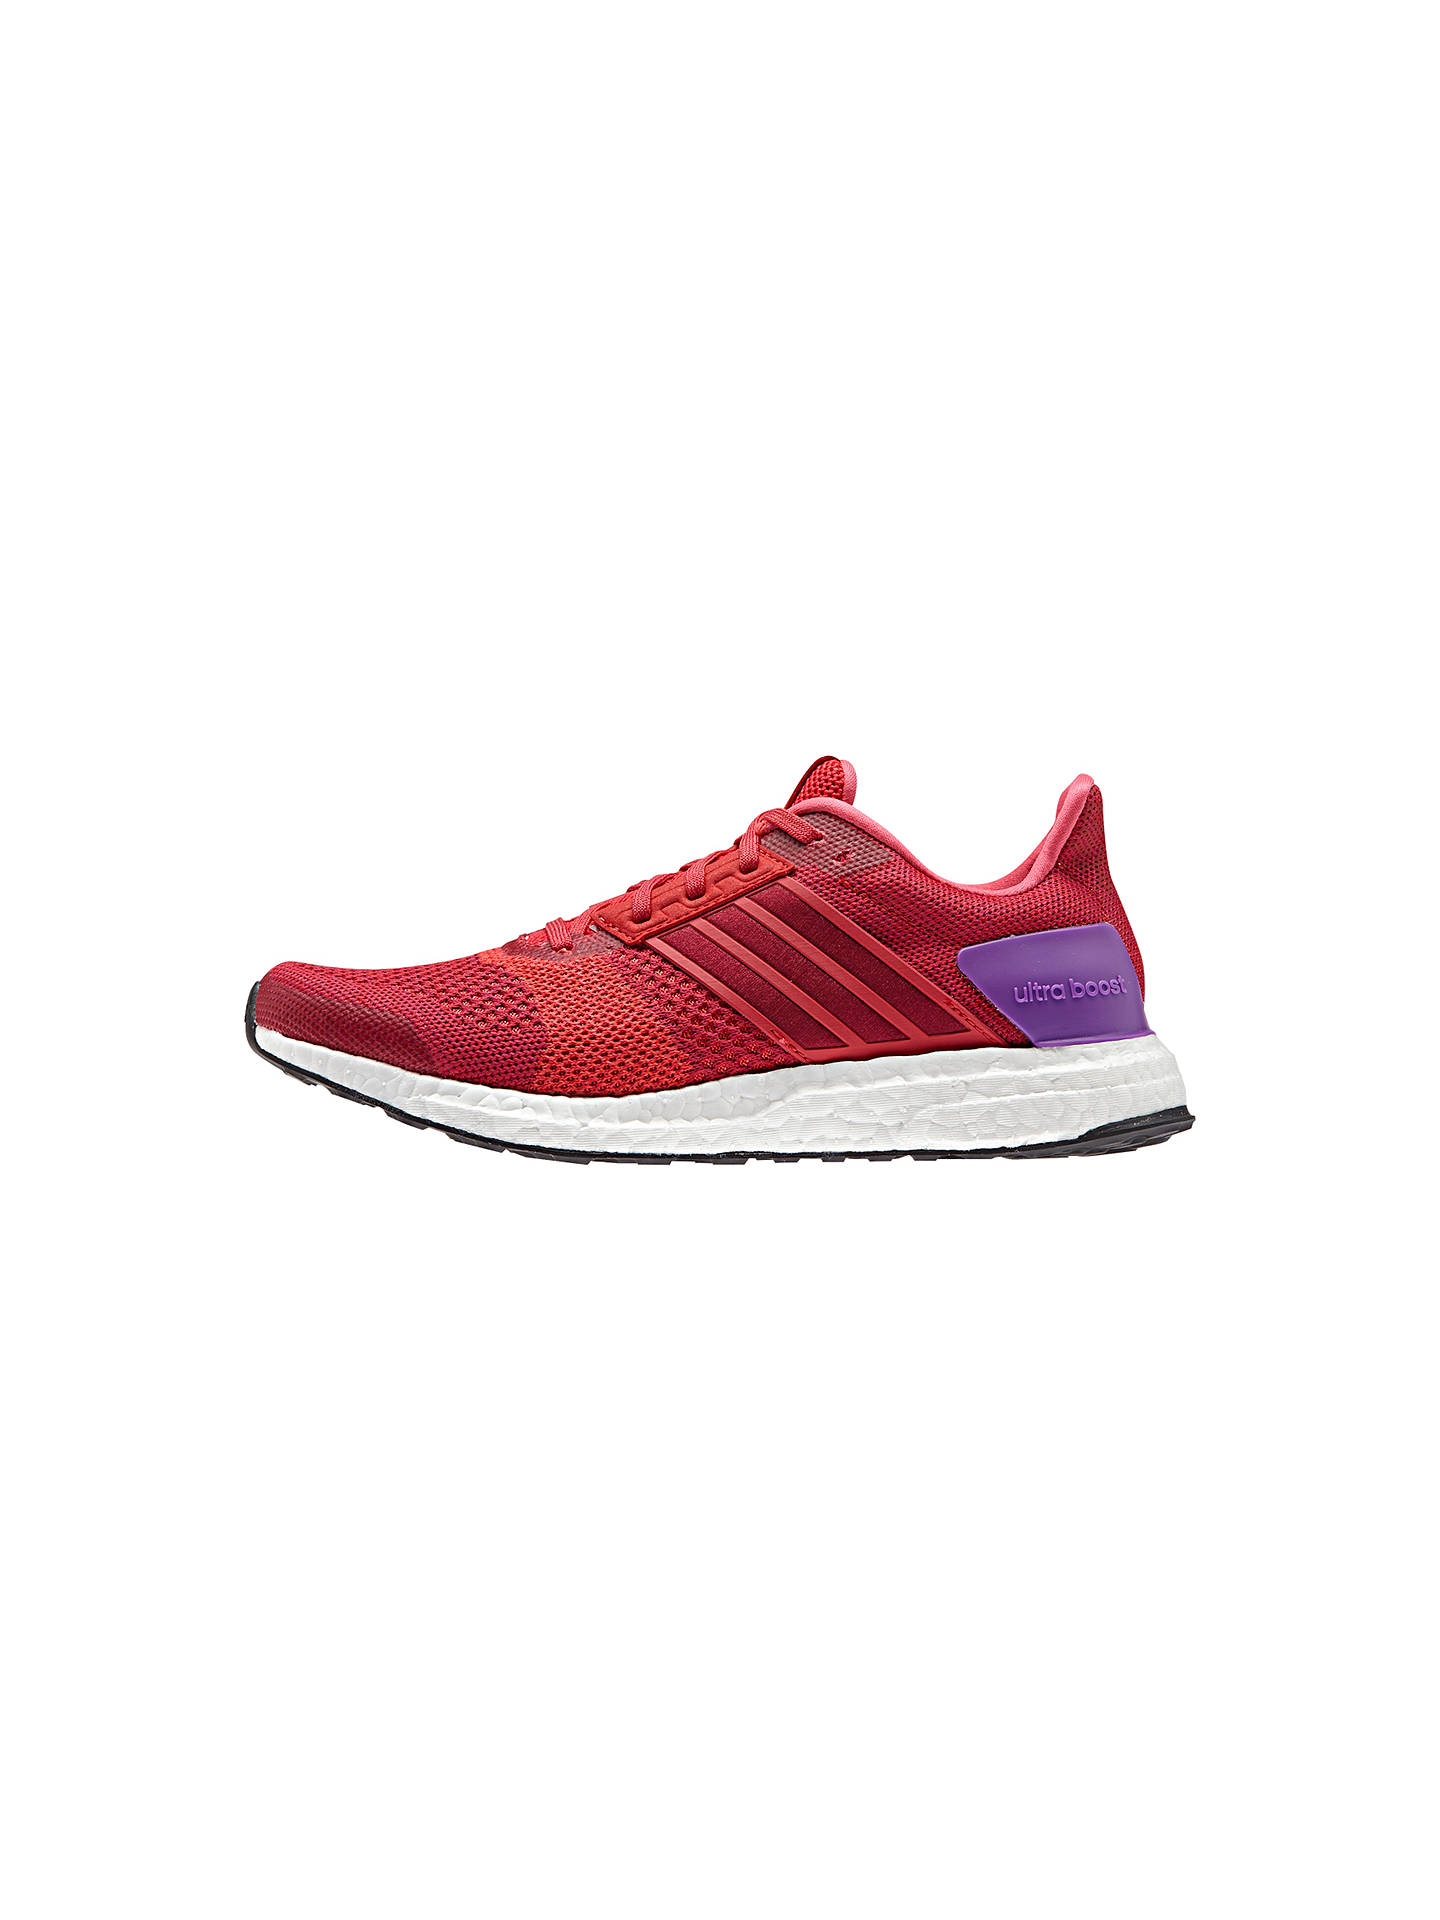 new product 2970e b606b Buyadidas Ultra Boost ST Womens Running Shoes, RedPink, 4 Online at  johnlewis ...